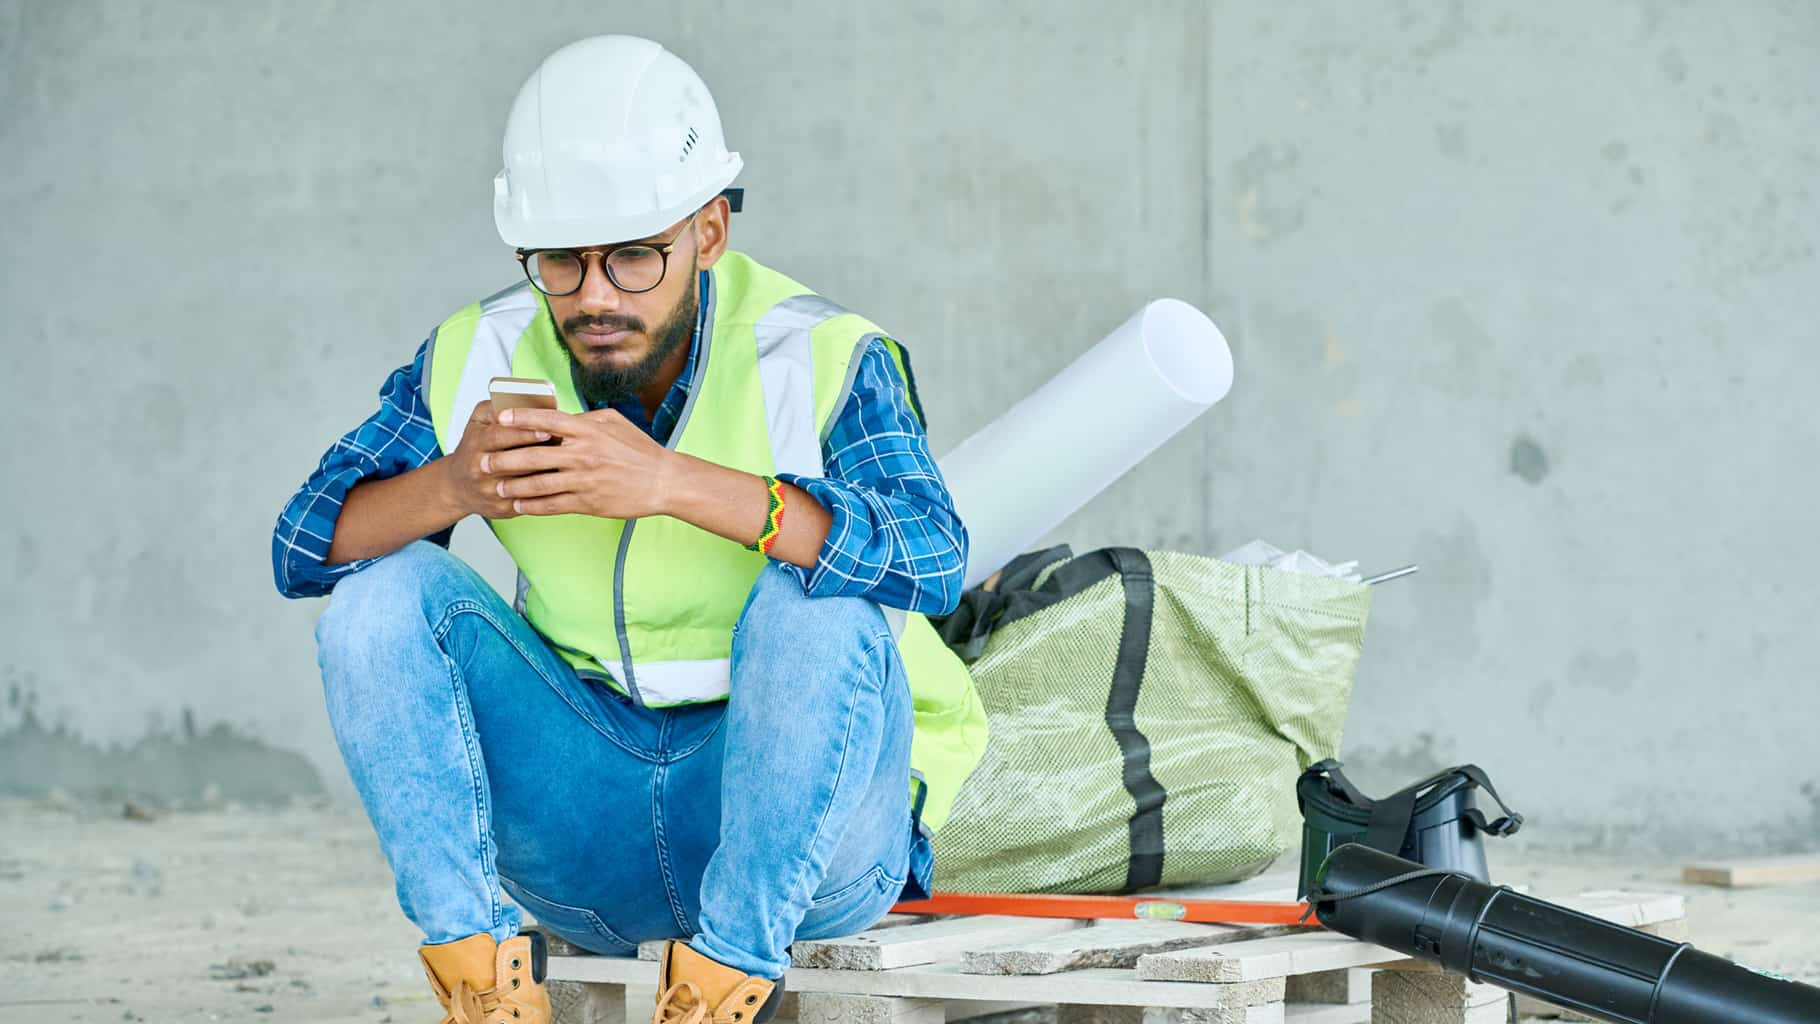 Wonolo brings transparency to the unorganized blue-collar job market (Photo: iStock)